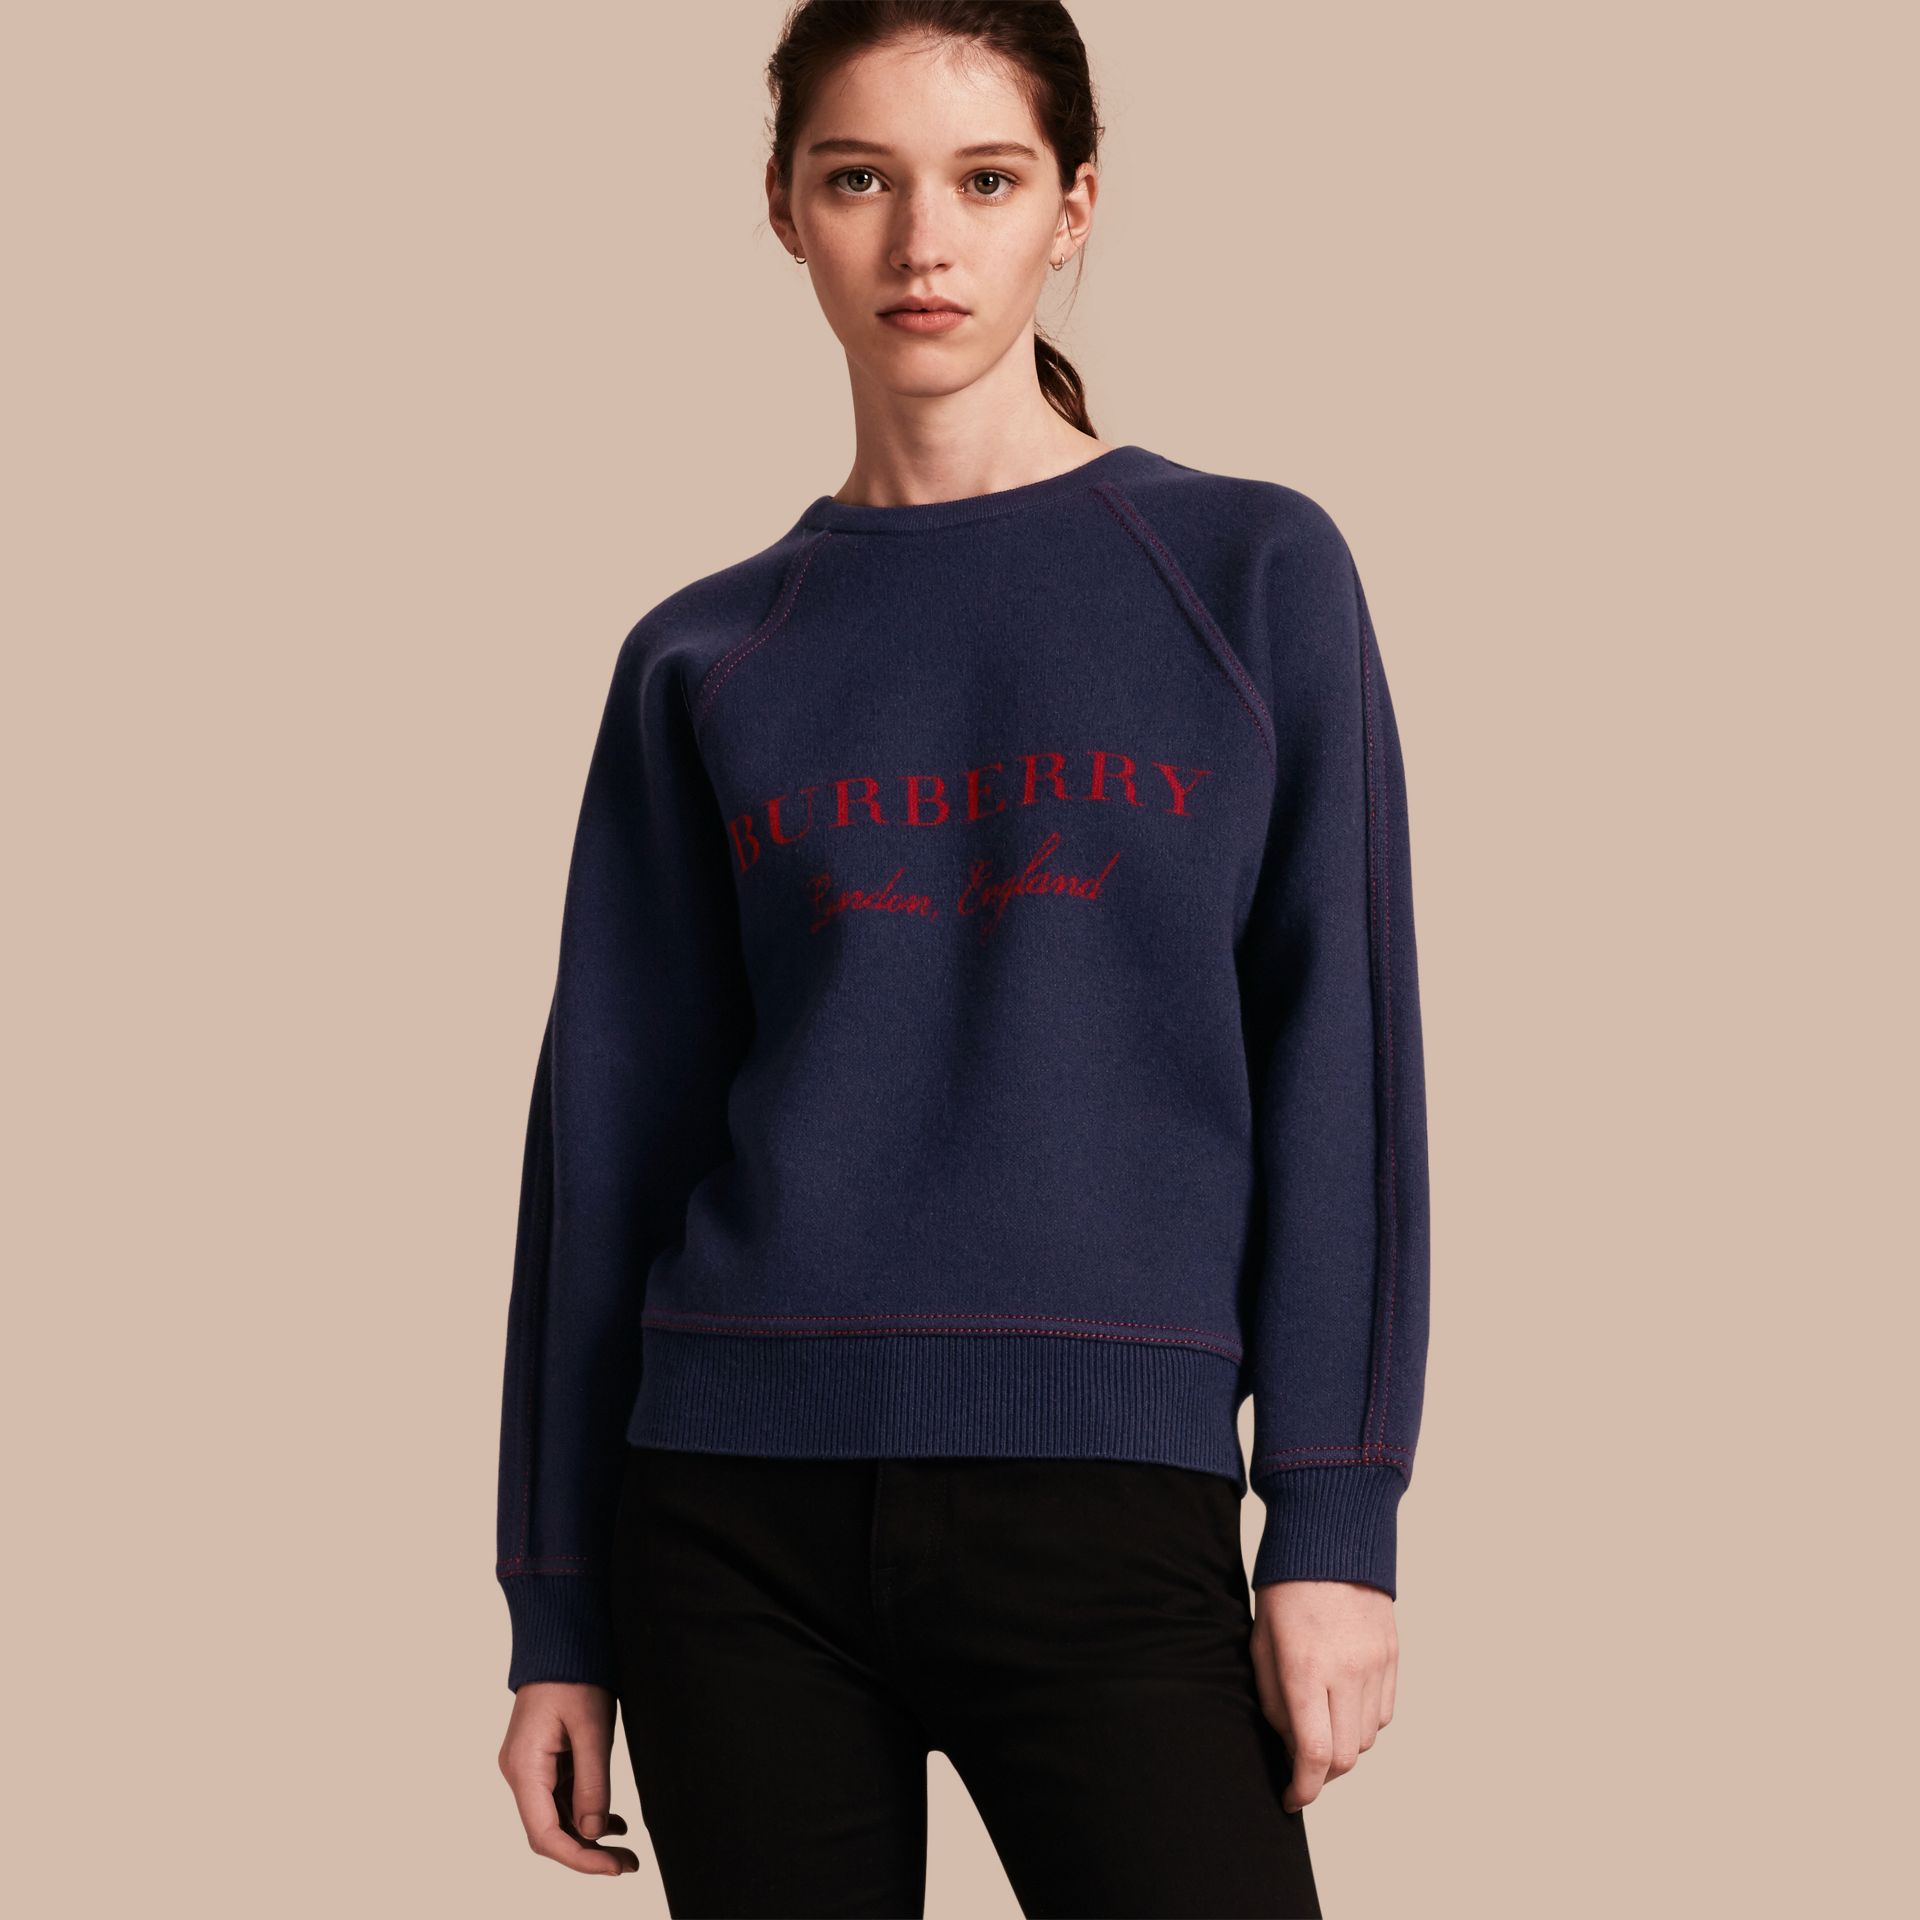 Topstitch Detail Wool Cashmere Blend Sweater in Navy - Women | Burberry - gallery image 1